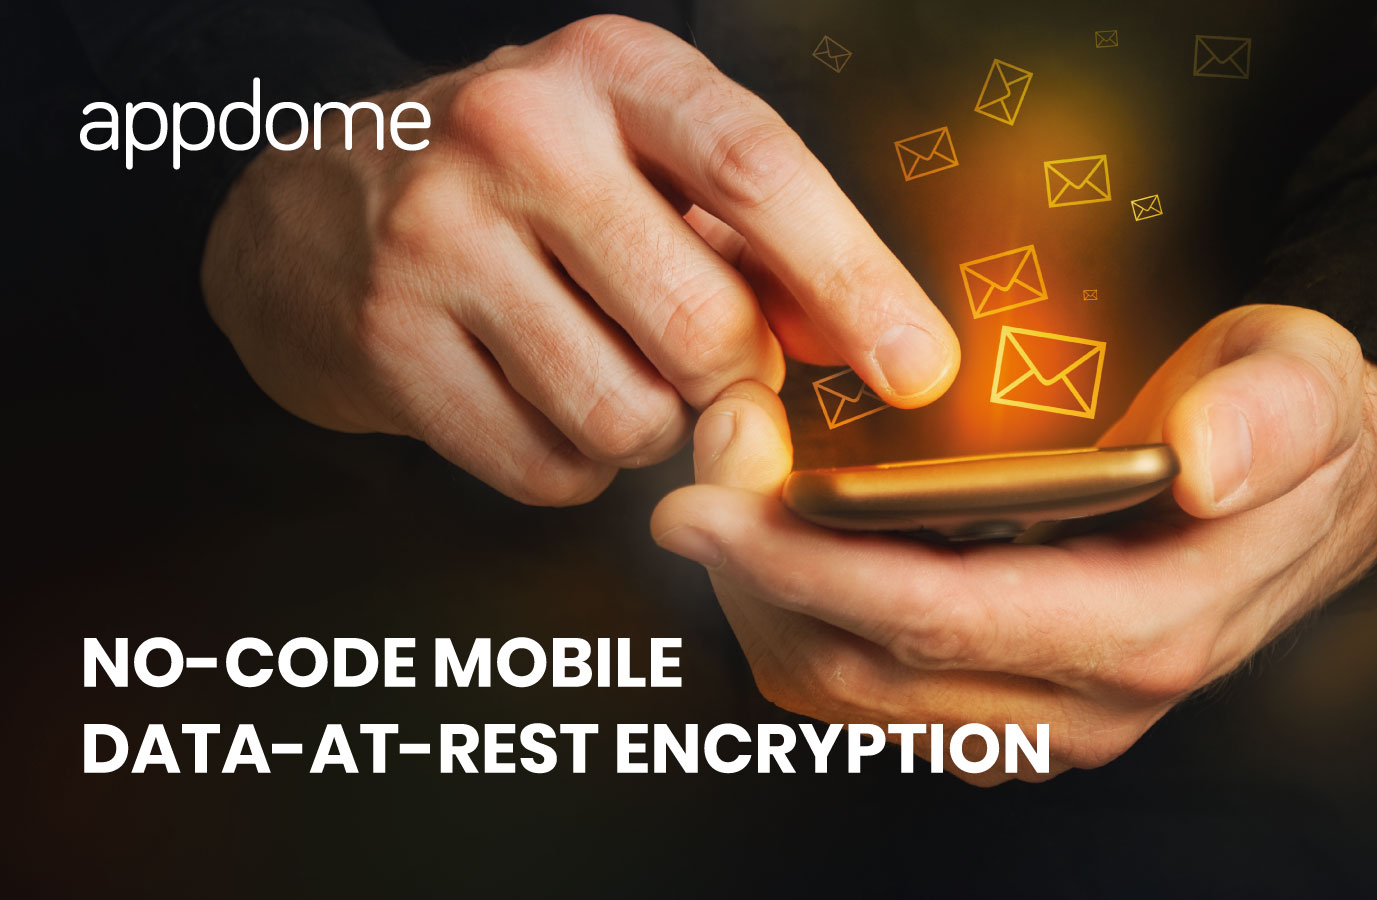 Appdome No Code Mobile Data at Rest Encryption